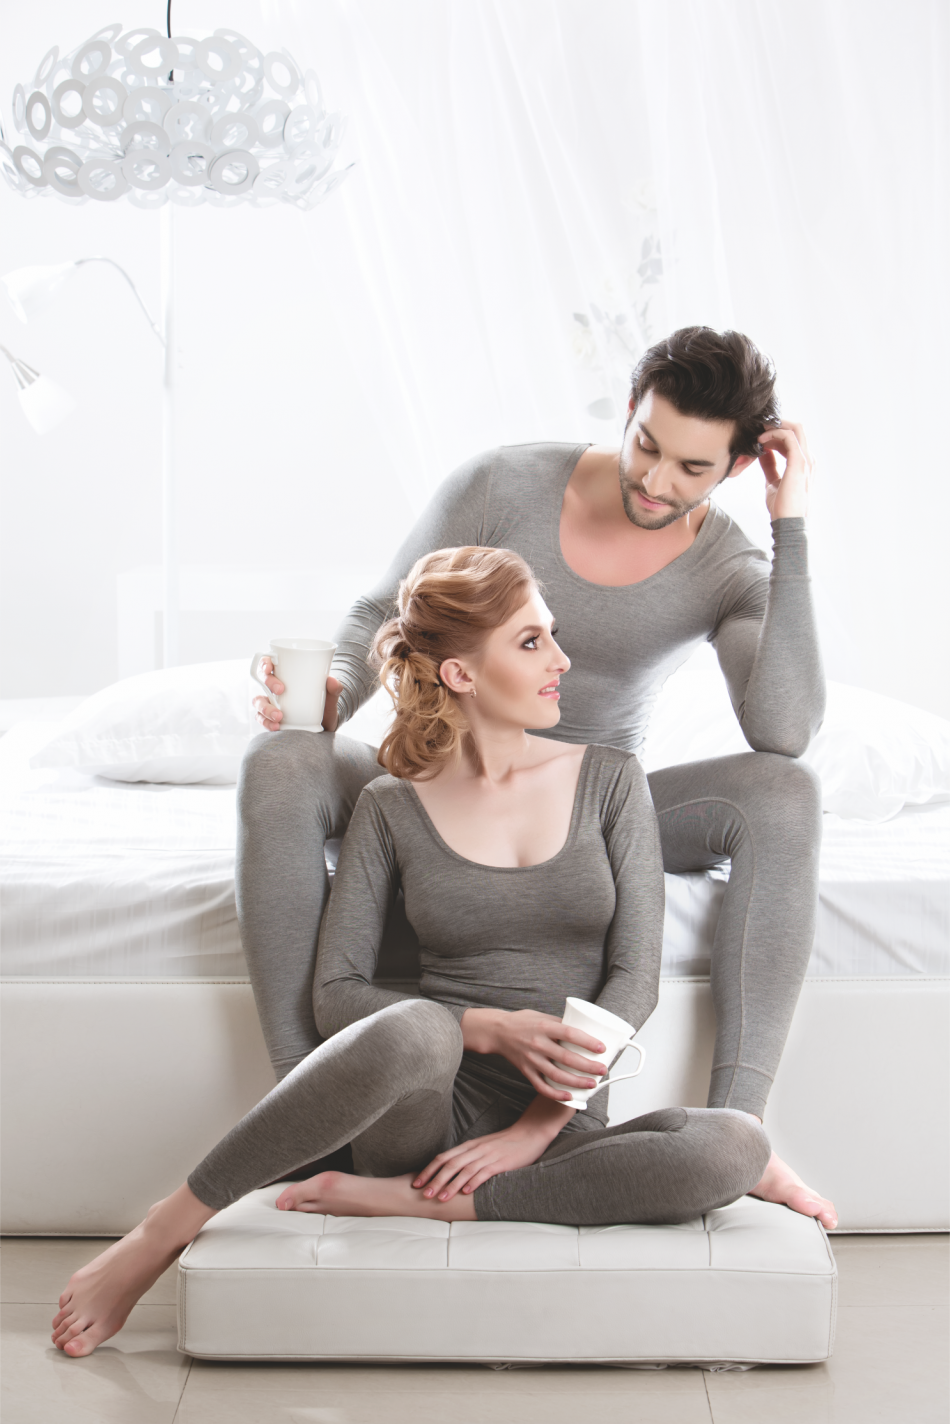 Couple in Grey Thermals Poses for Ayaki Indian Thermals Brand